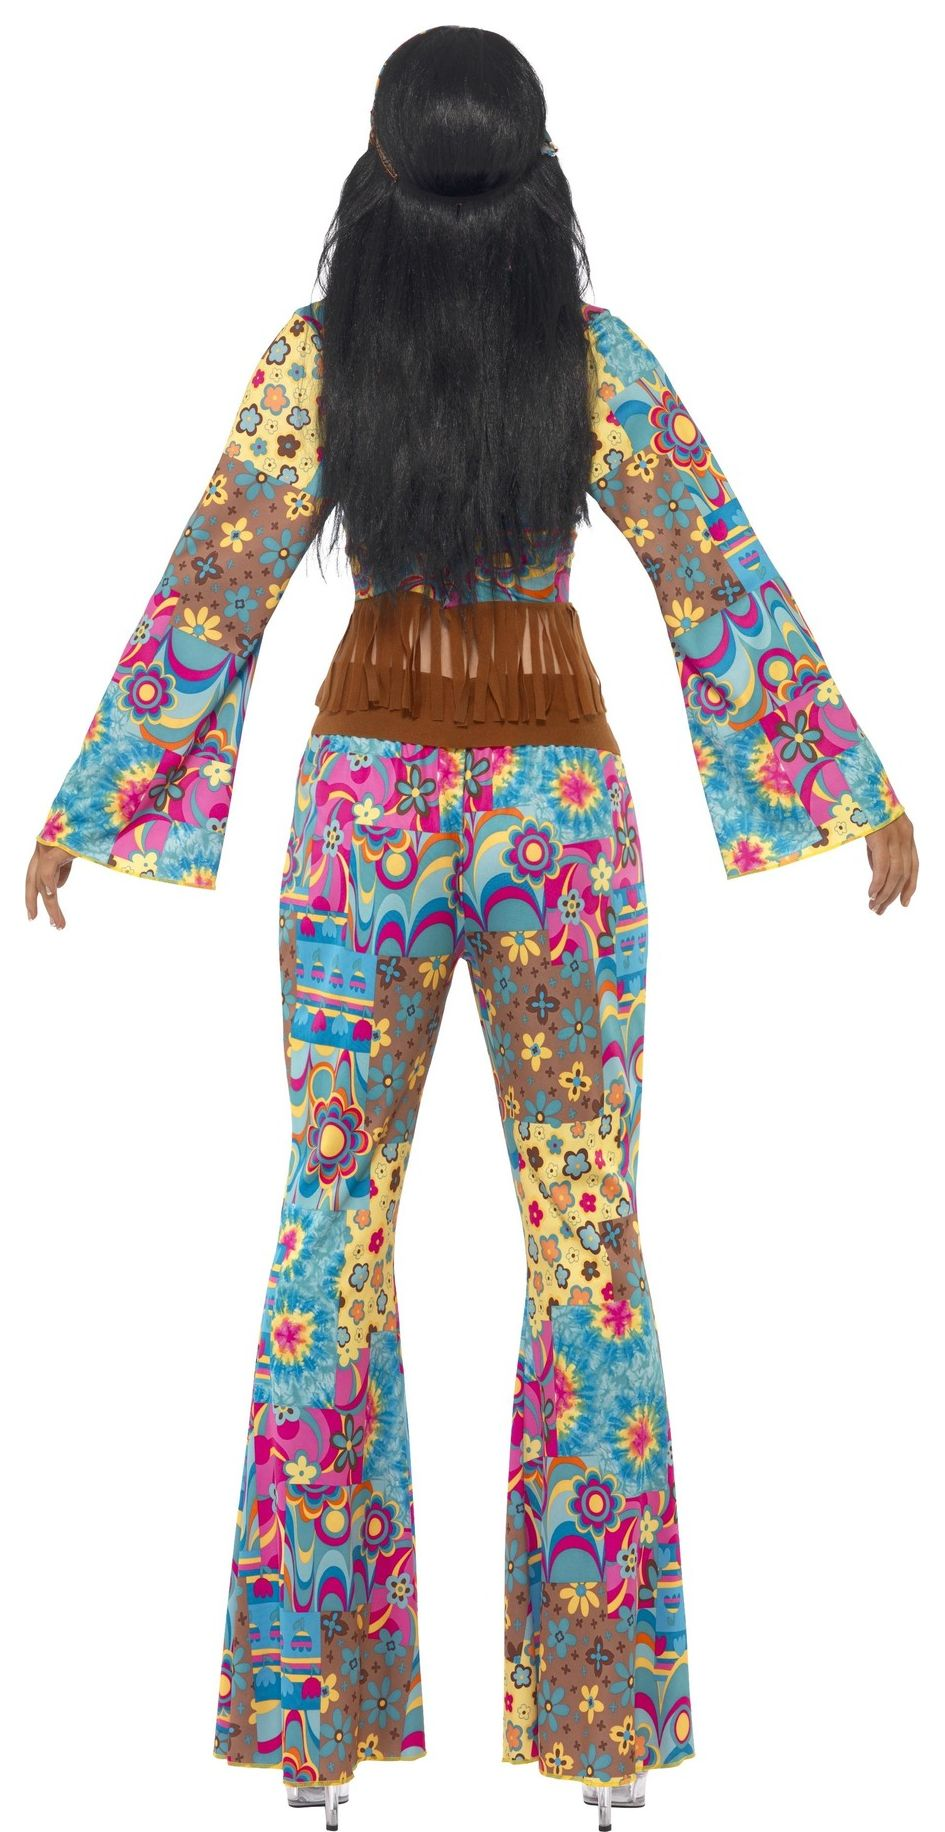 Hippie Flower Power outfit